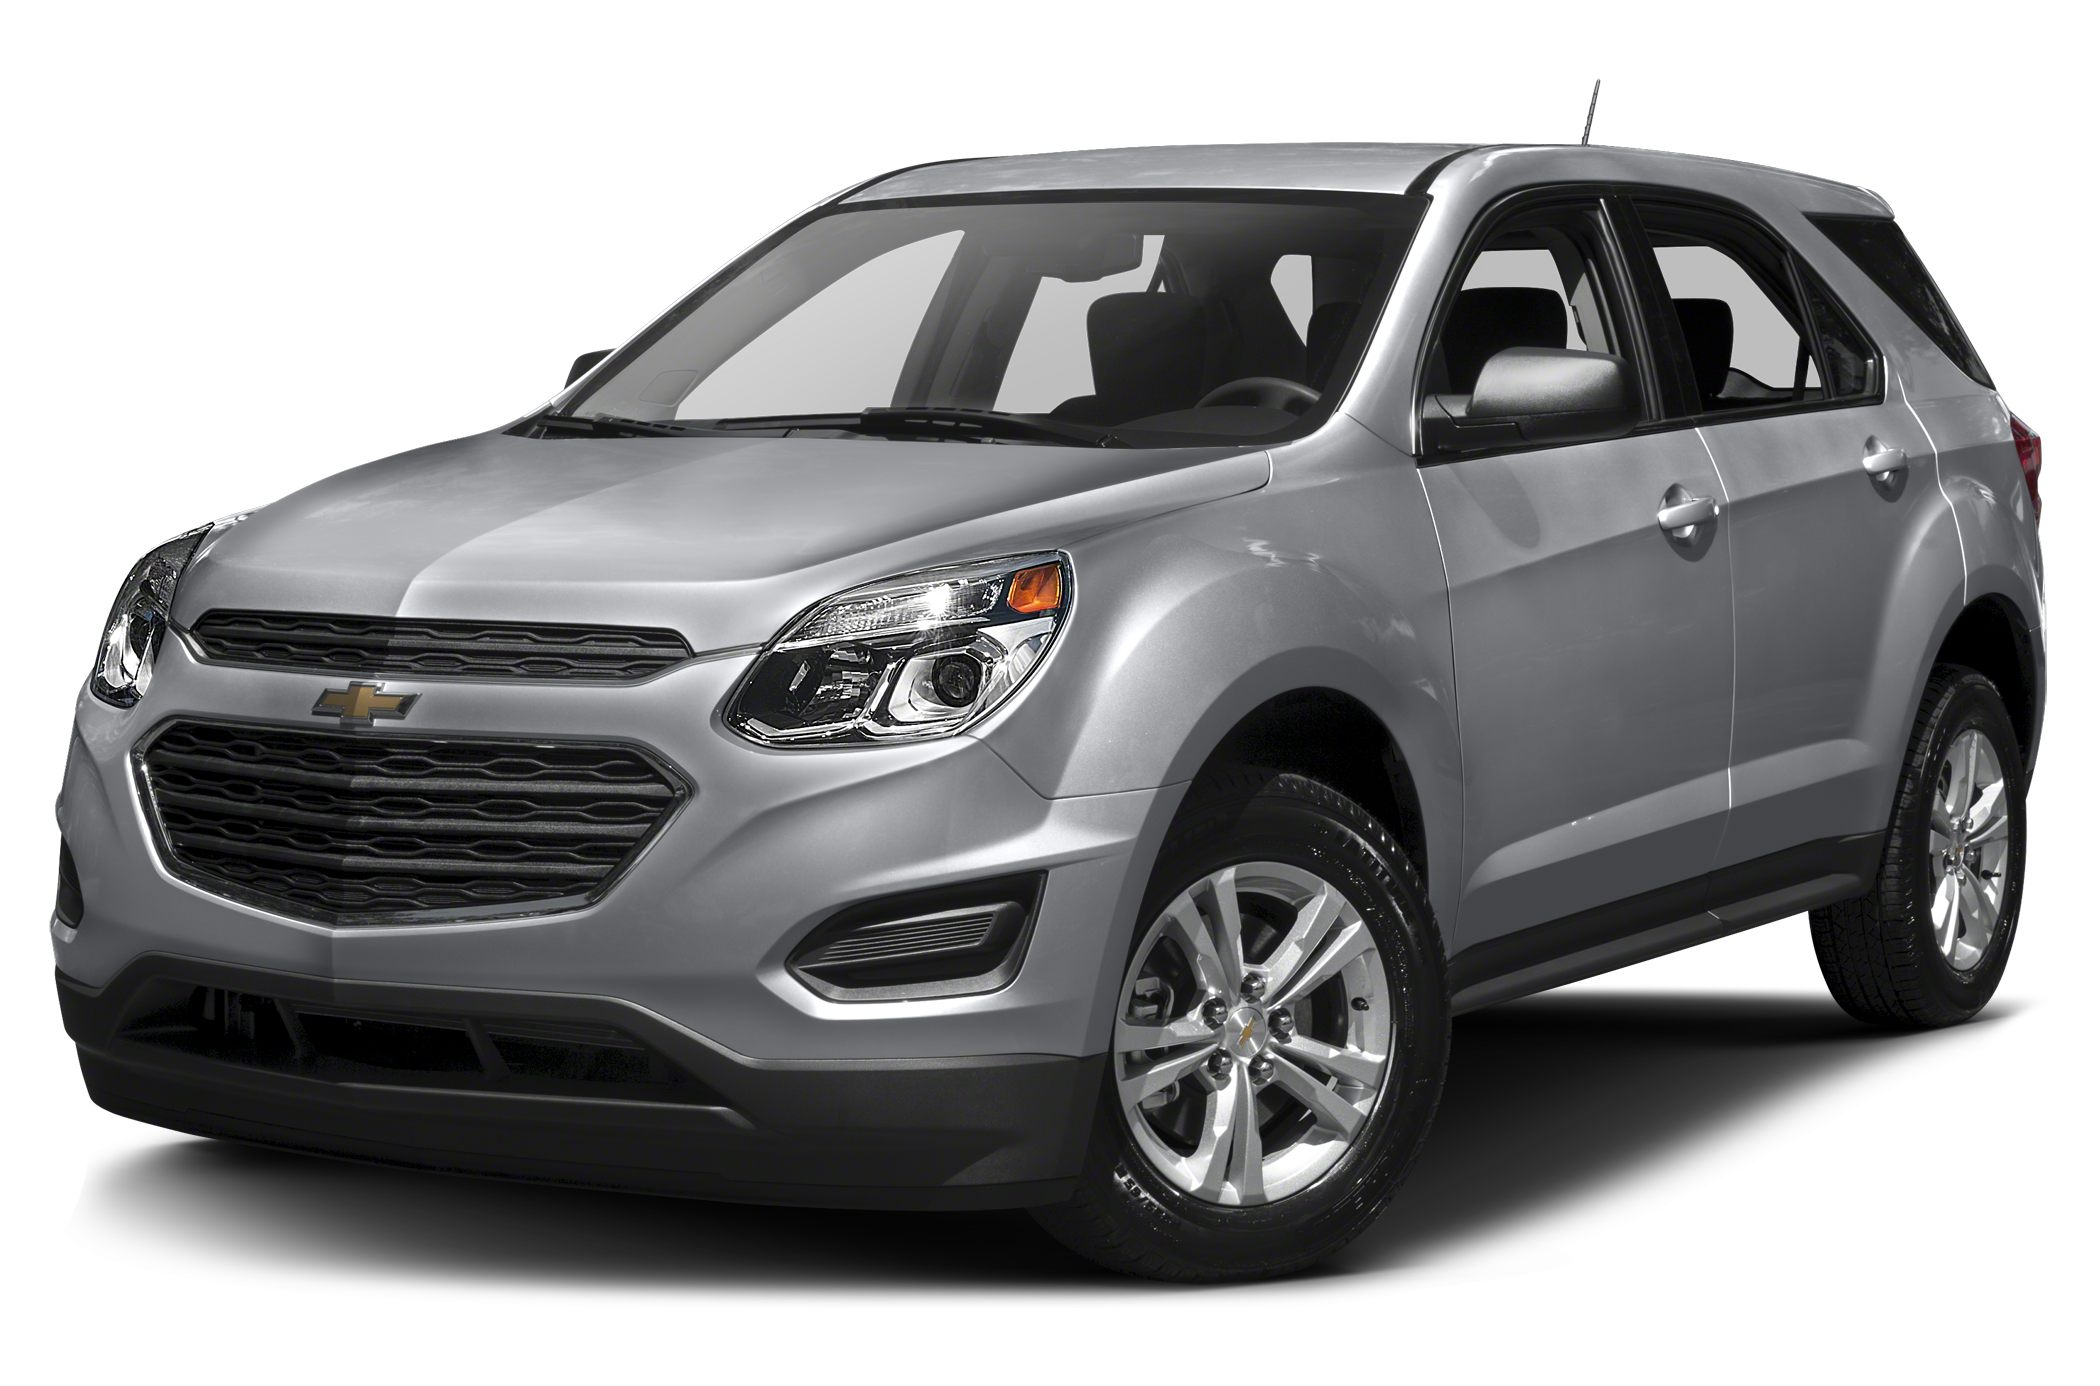 2016 Chevrolet Equinox Photos